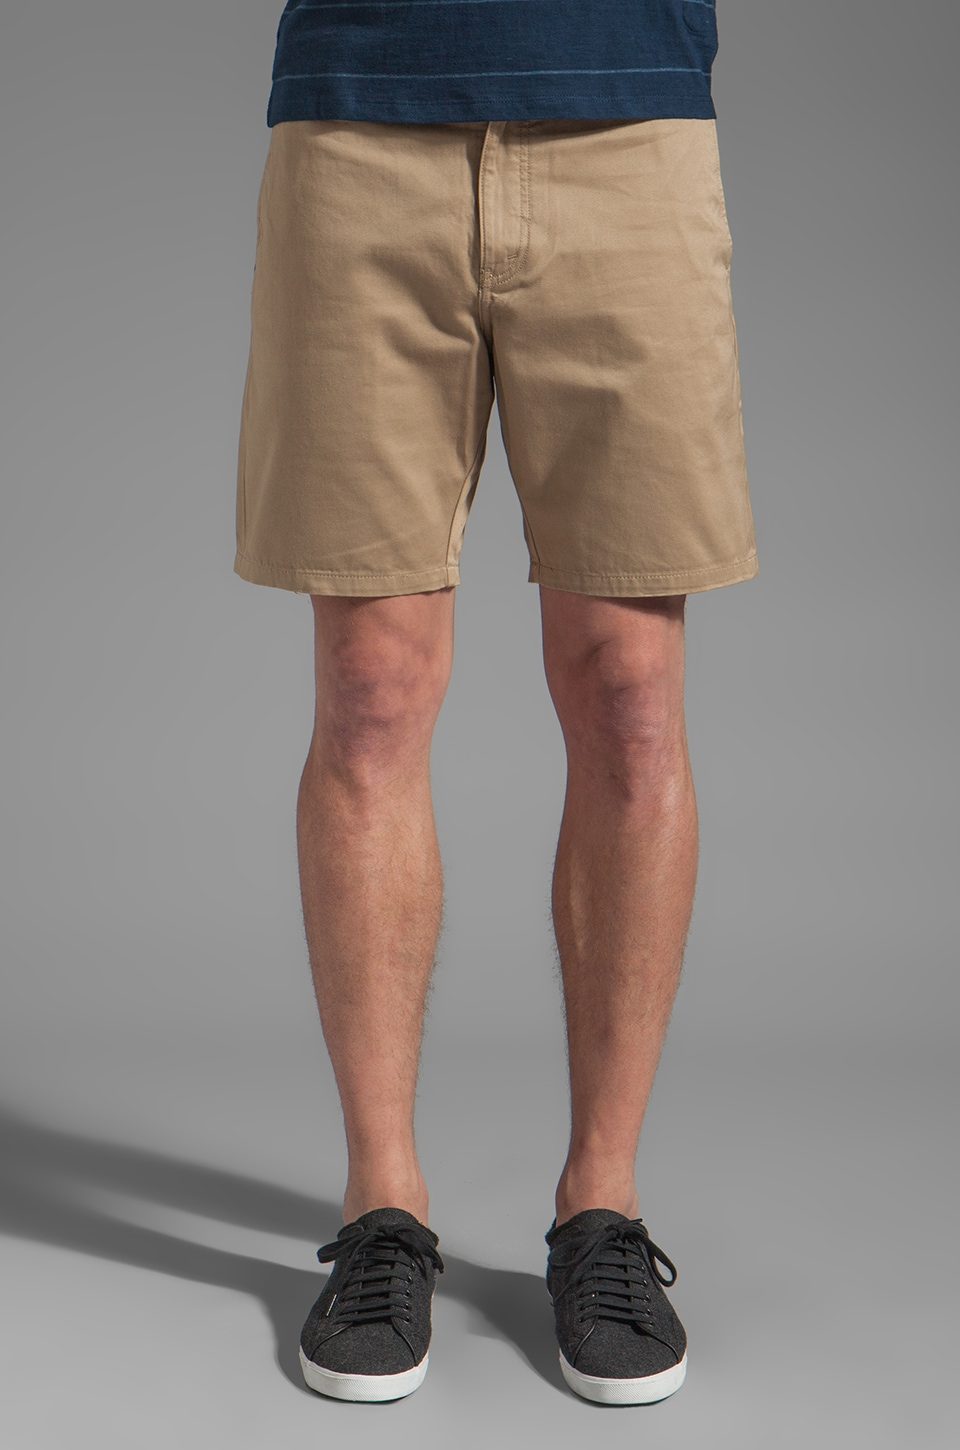 V.S.T.R Craftsman Selvedge Chino Short in Khaki